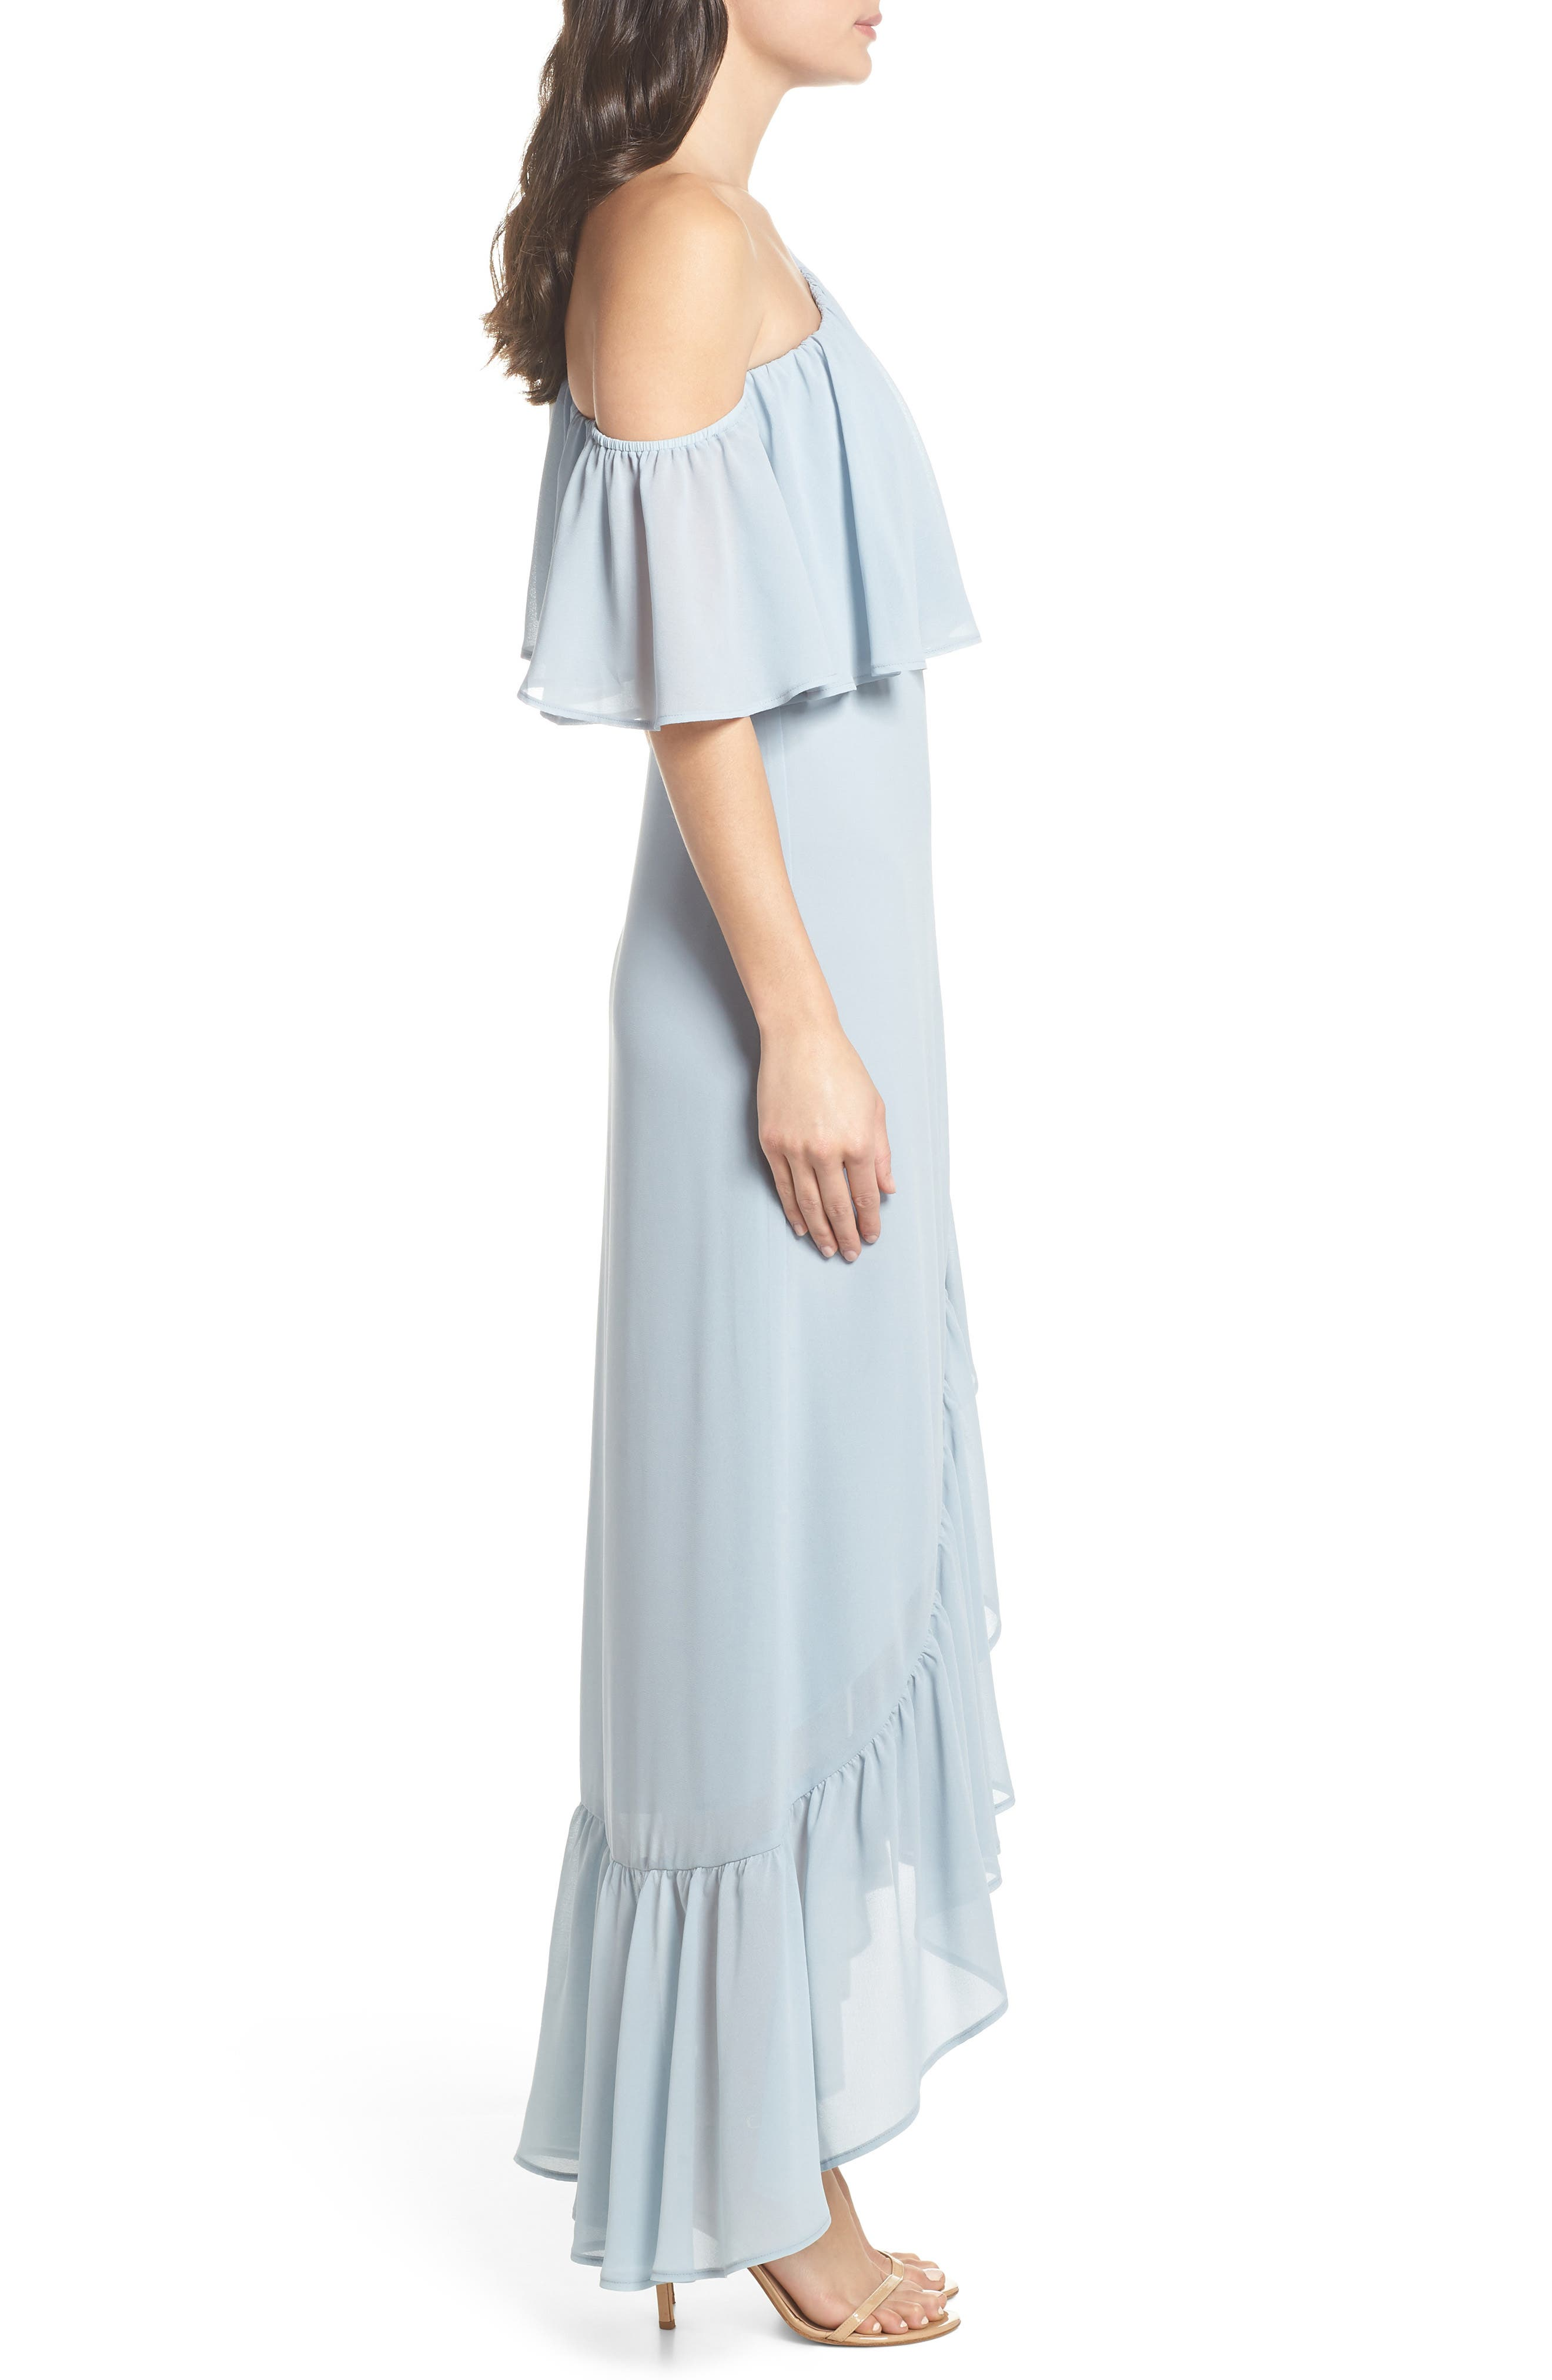 Tango Ruffle Gown,                             Alternate thumbnail 3, color,                             STEEL BLUE CHIFFON